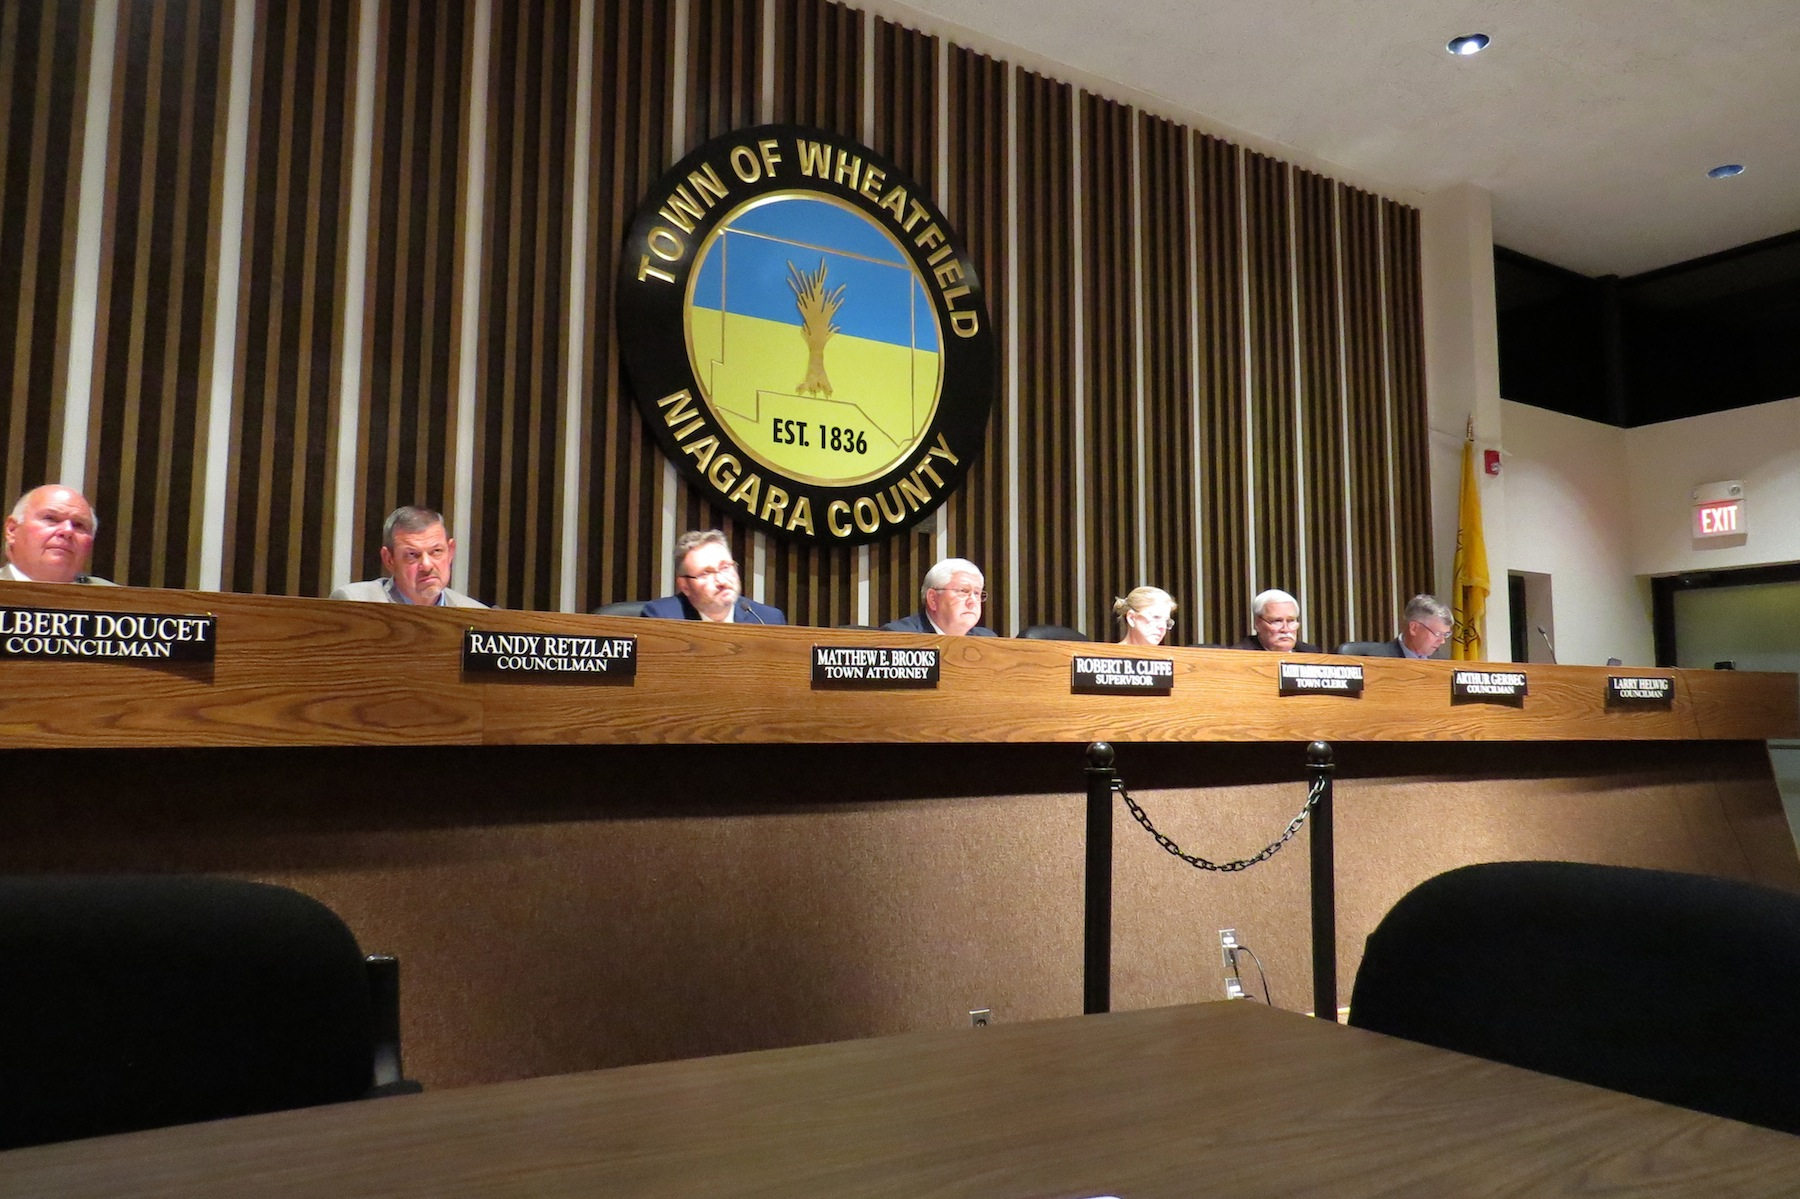 The Wheatfield Town Board. (Photo by David Yarger)